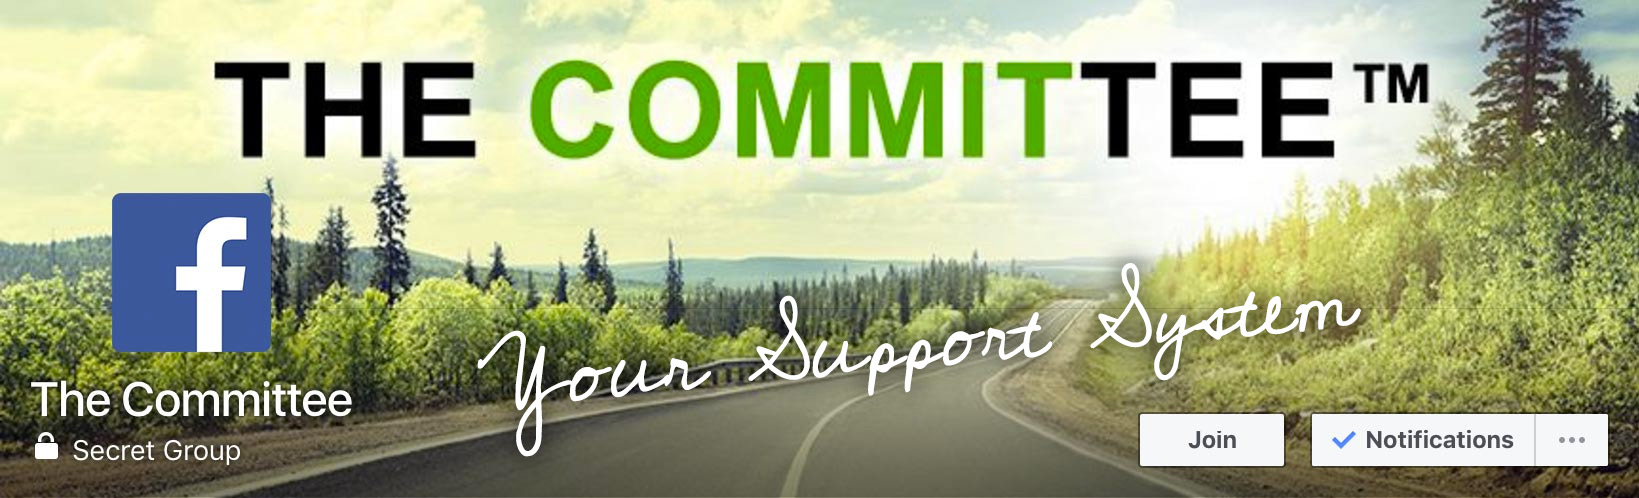 committee-graphic-support-grp-004